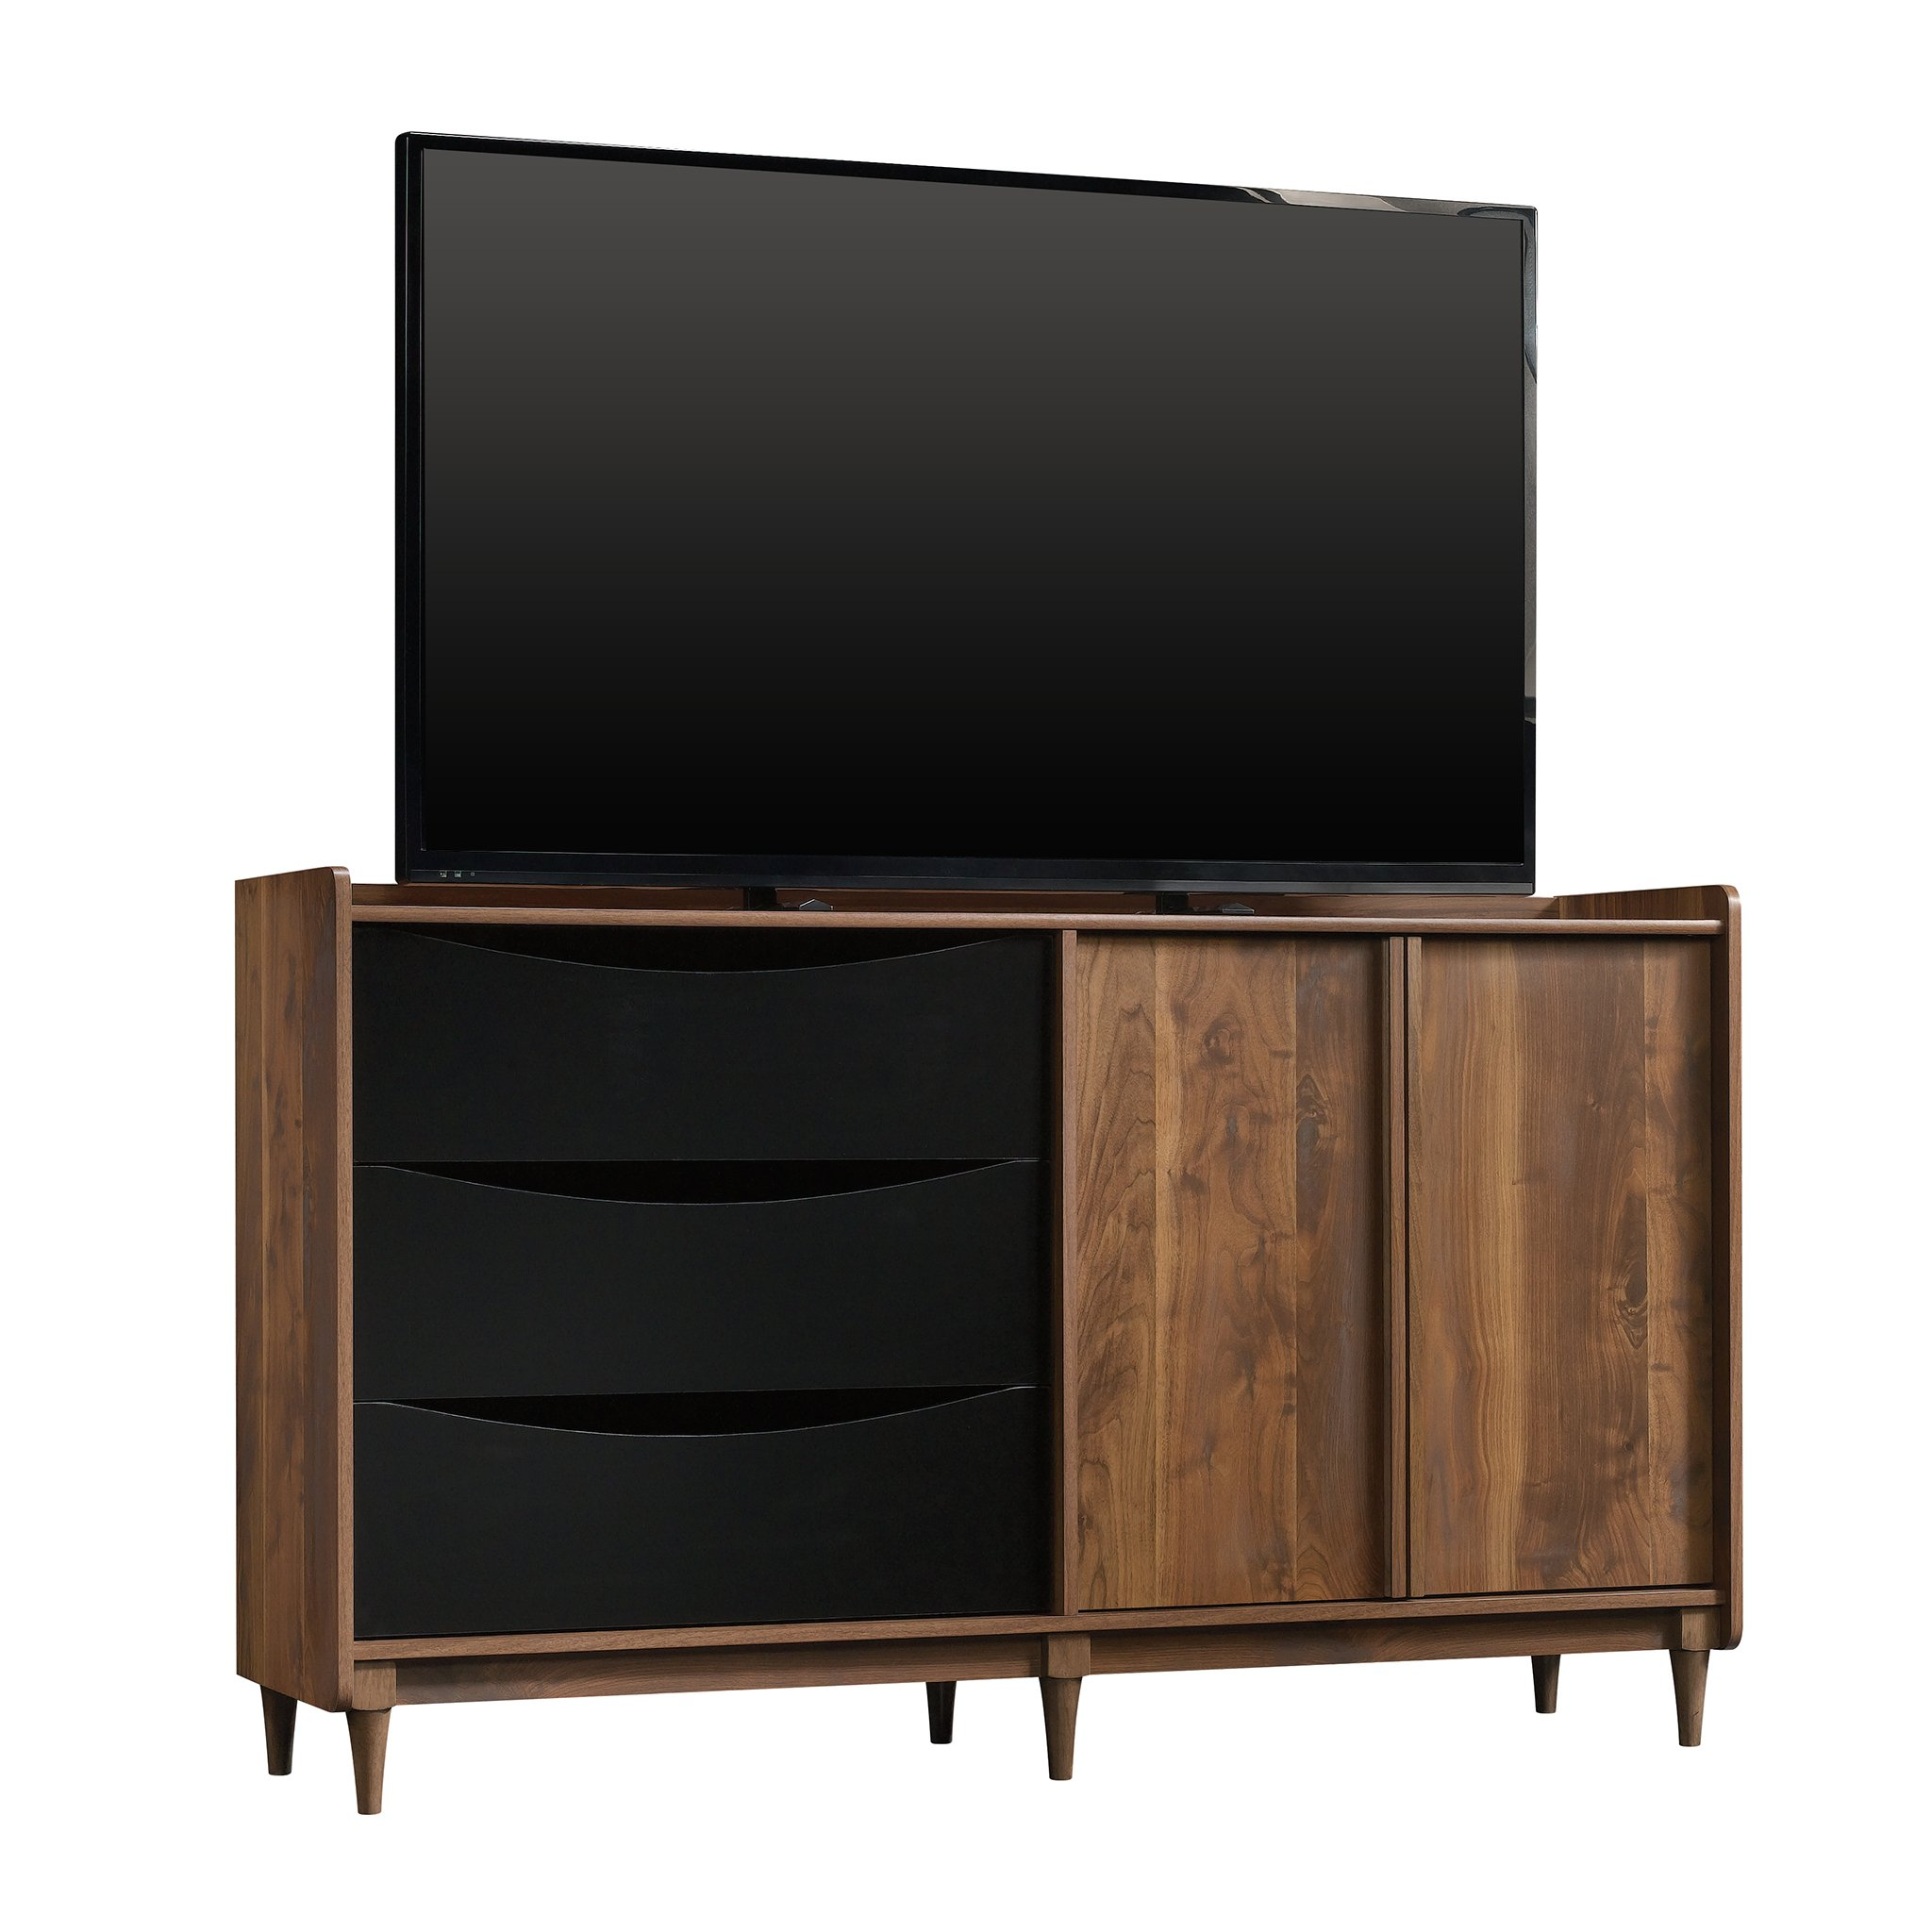 Sauder 420280 Harvey Park Entertainment Credenza, Grand Walnut Finish by Sauder (Image #2)